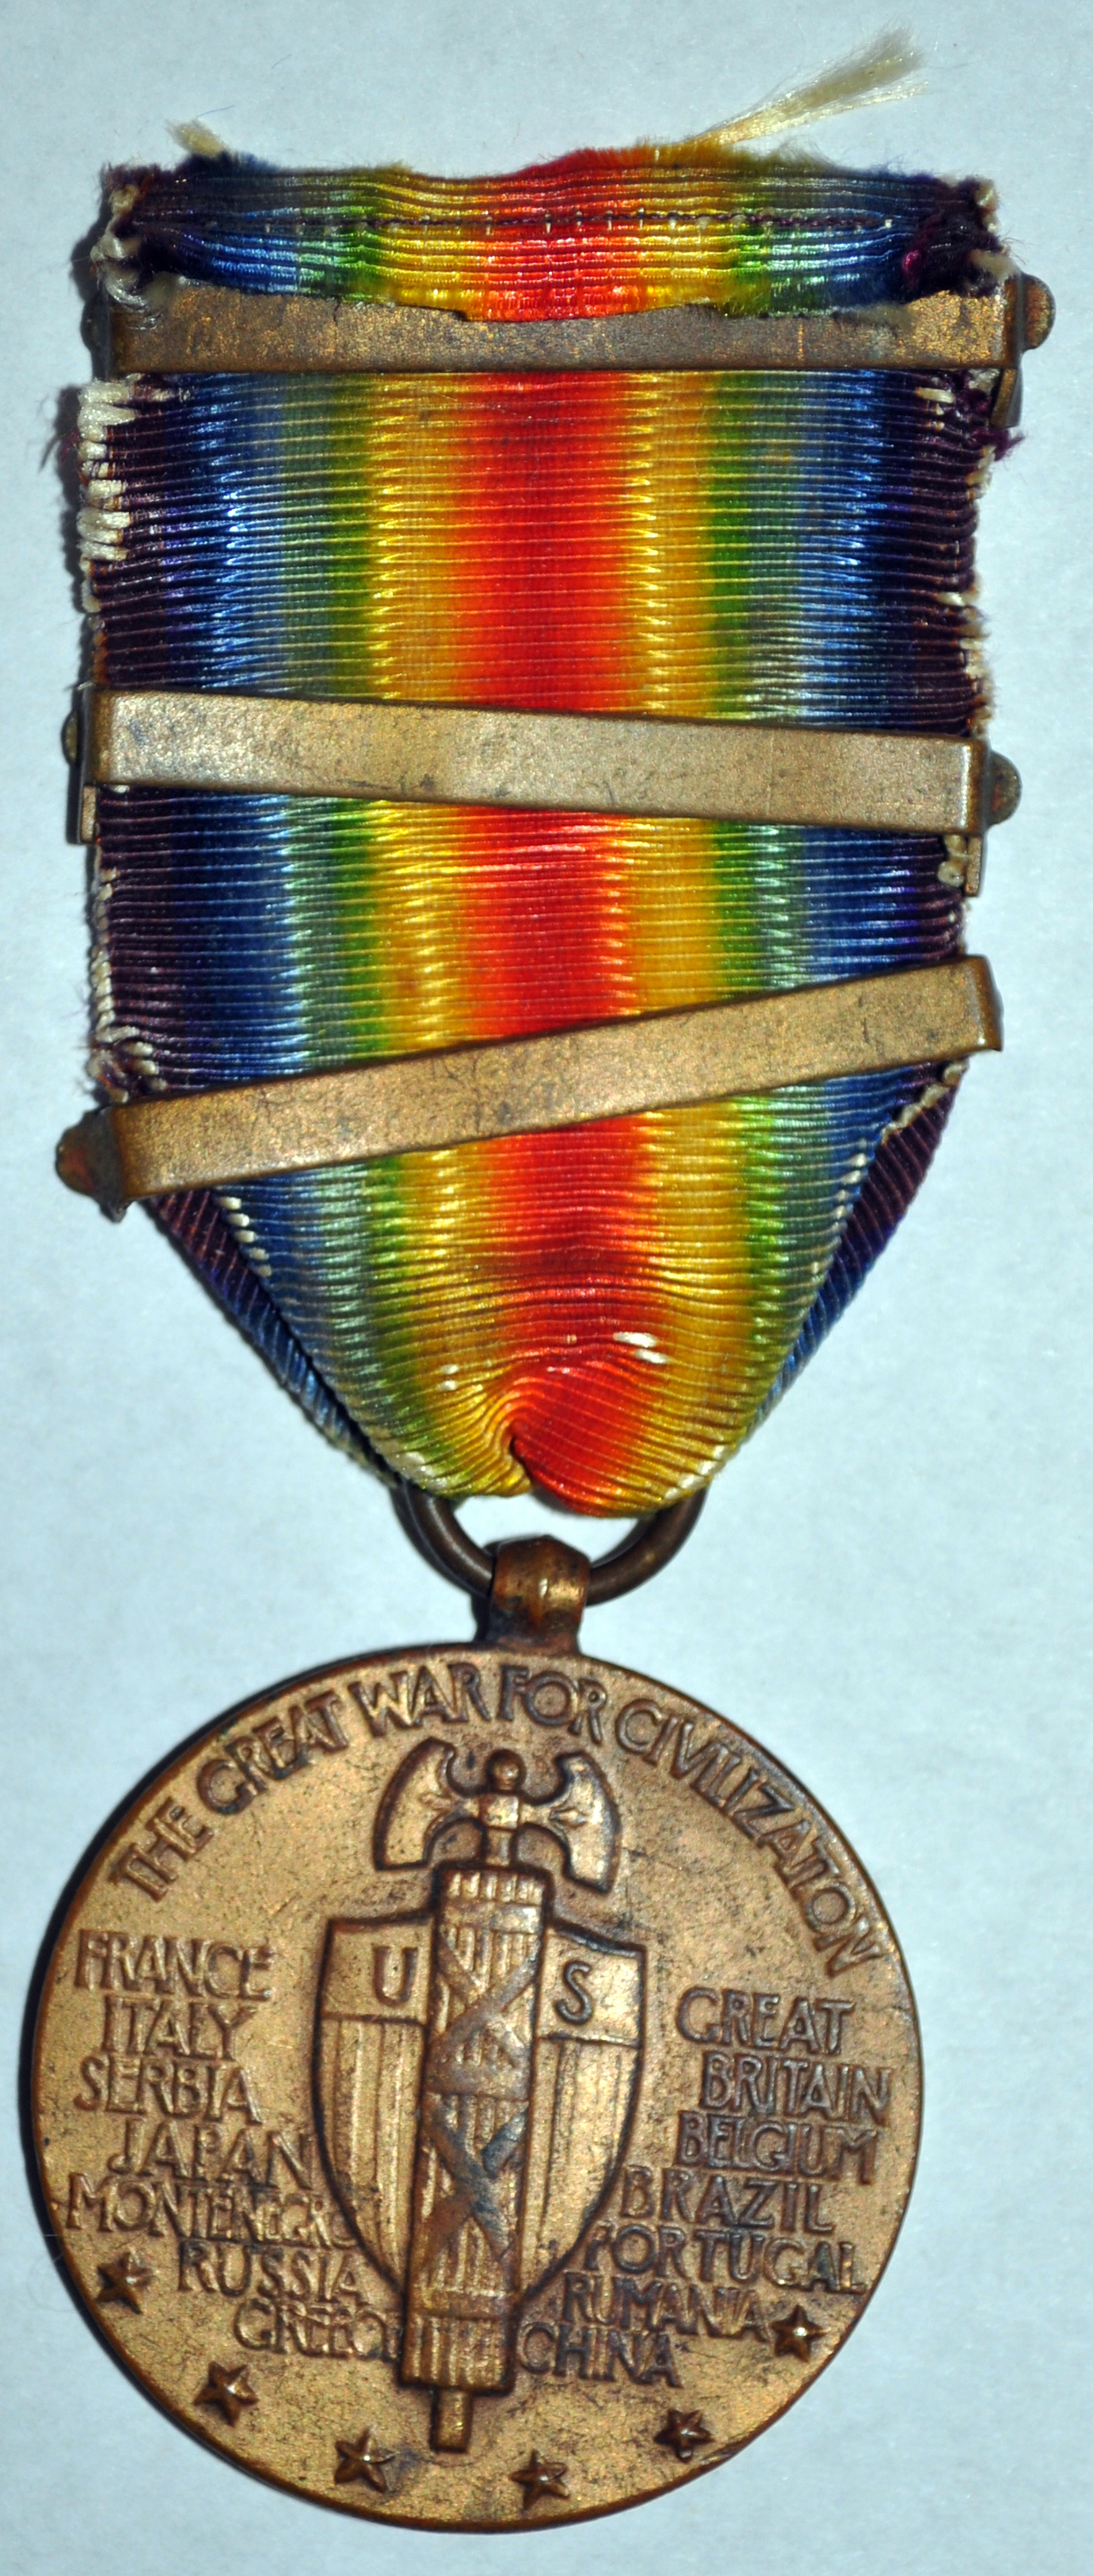 Great War Medal, Back, Earl L. Stahl Collection, Courtesy of Craig Bowers.